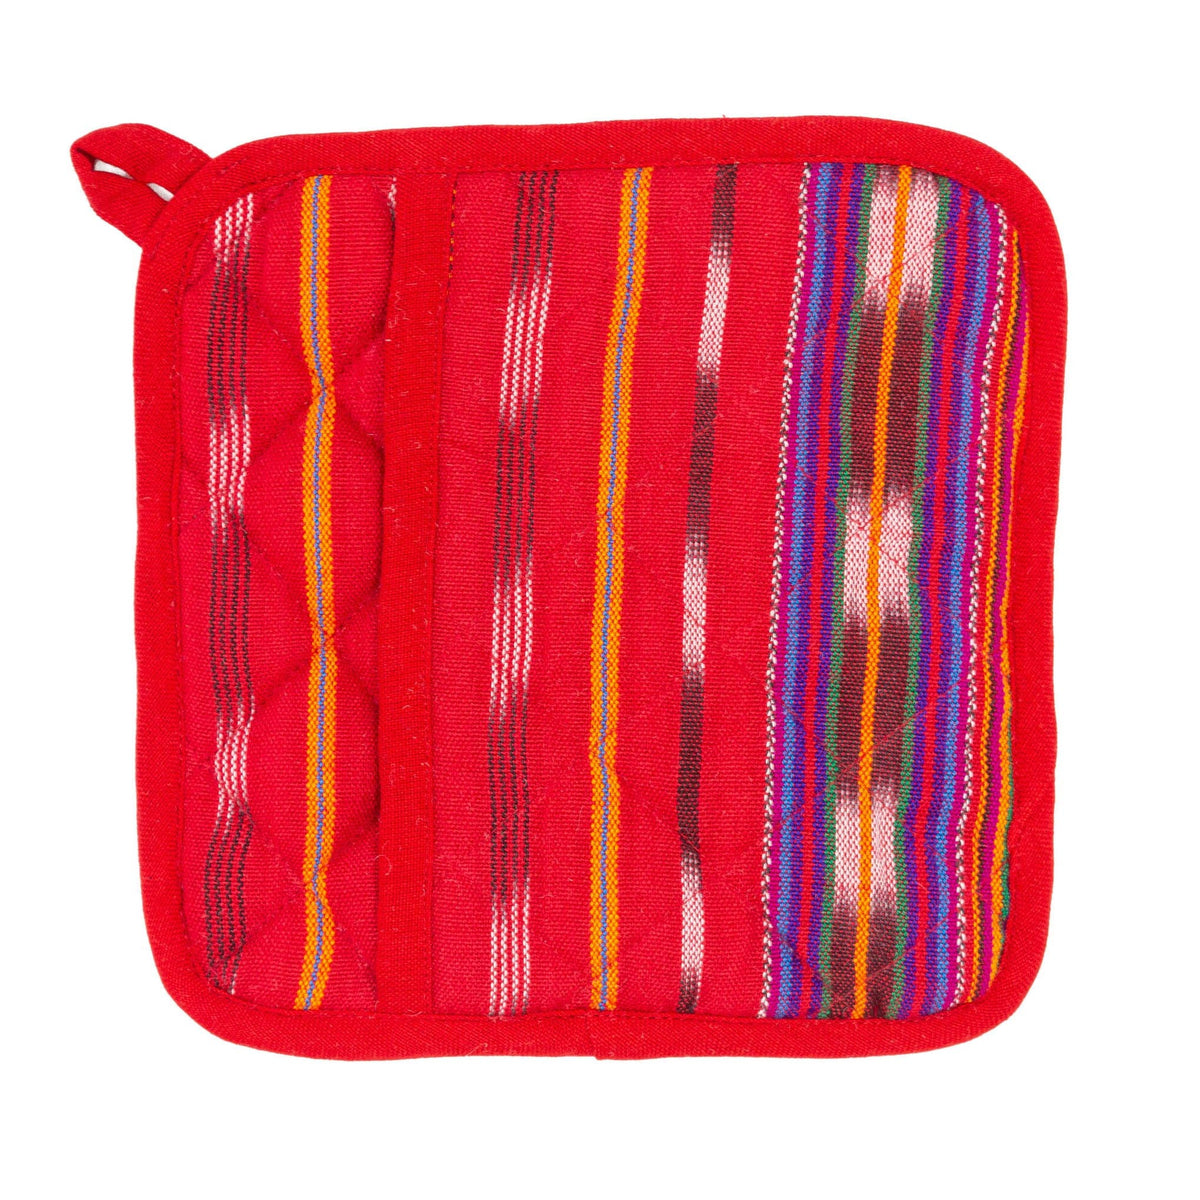 Upavim Pocket Pot Holder - Festive Red